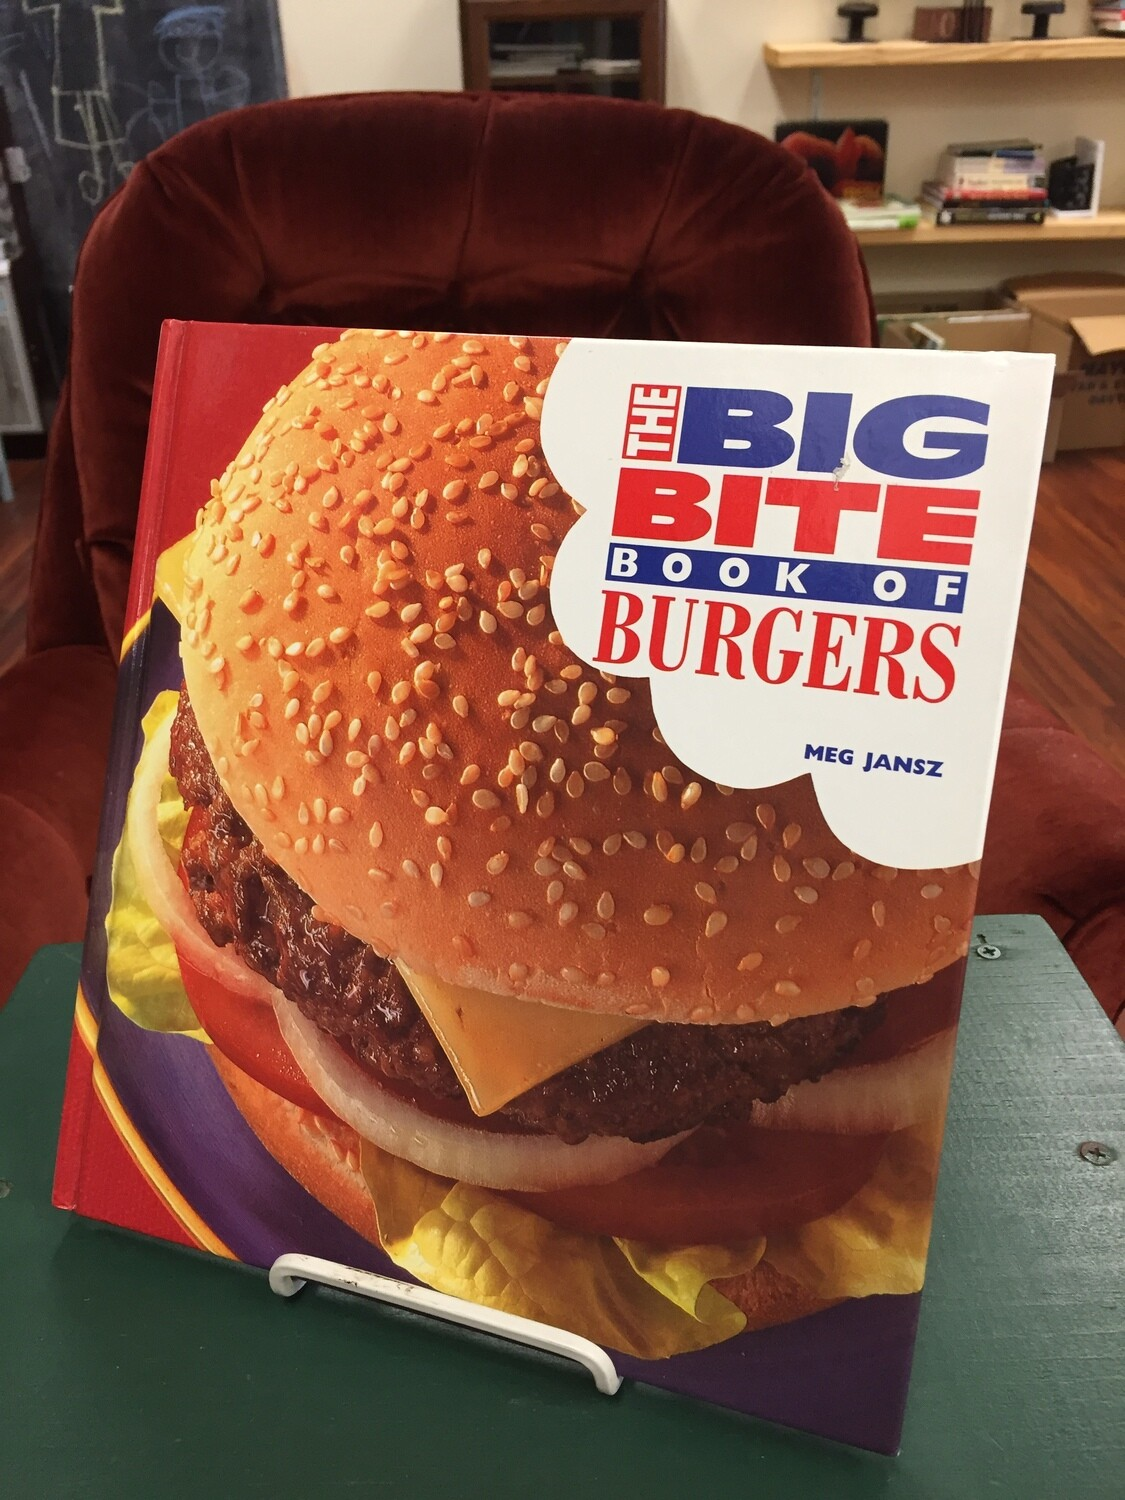 The Big Bite Book of Burgers